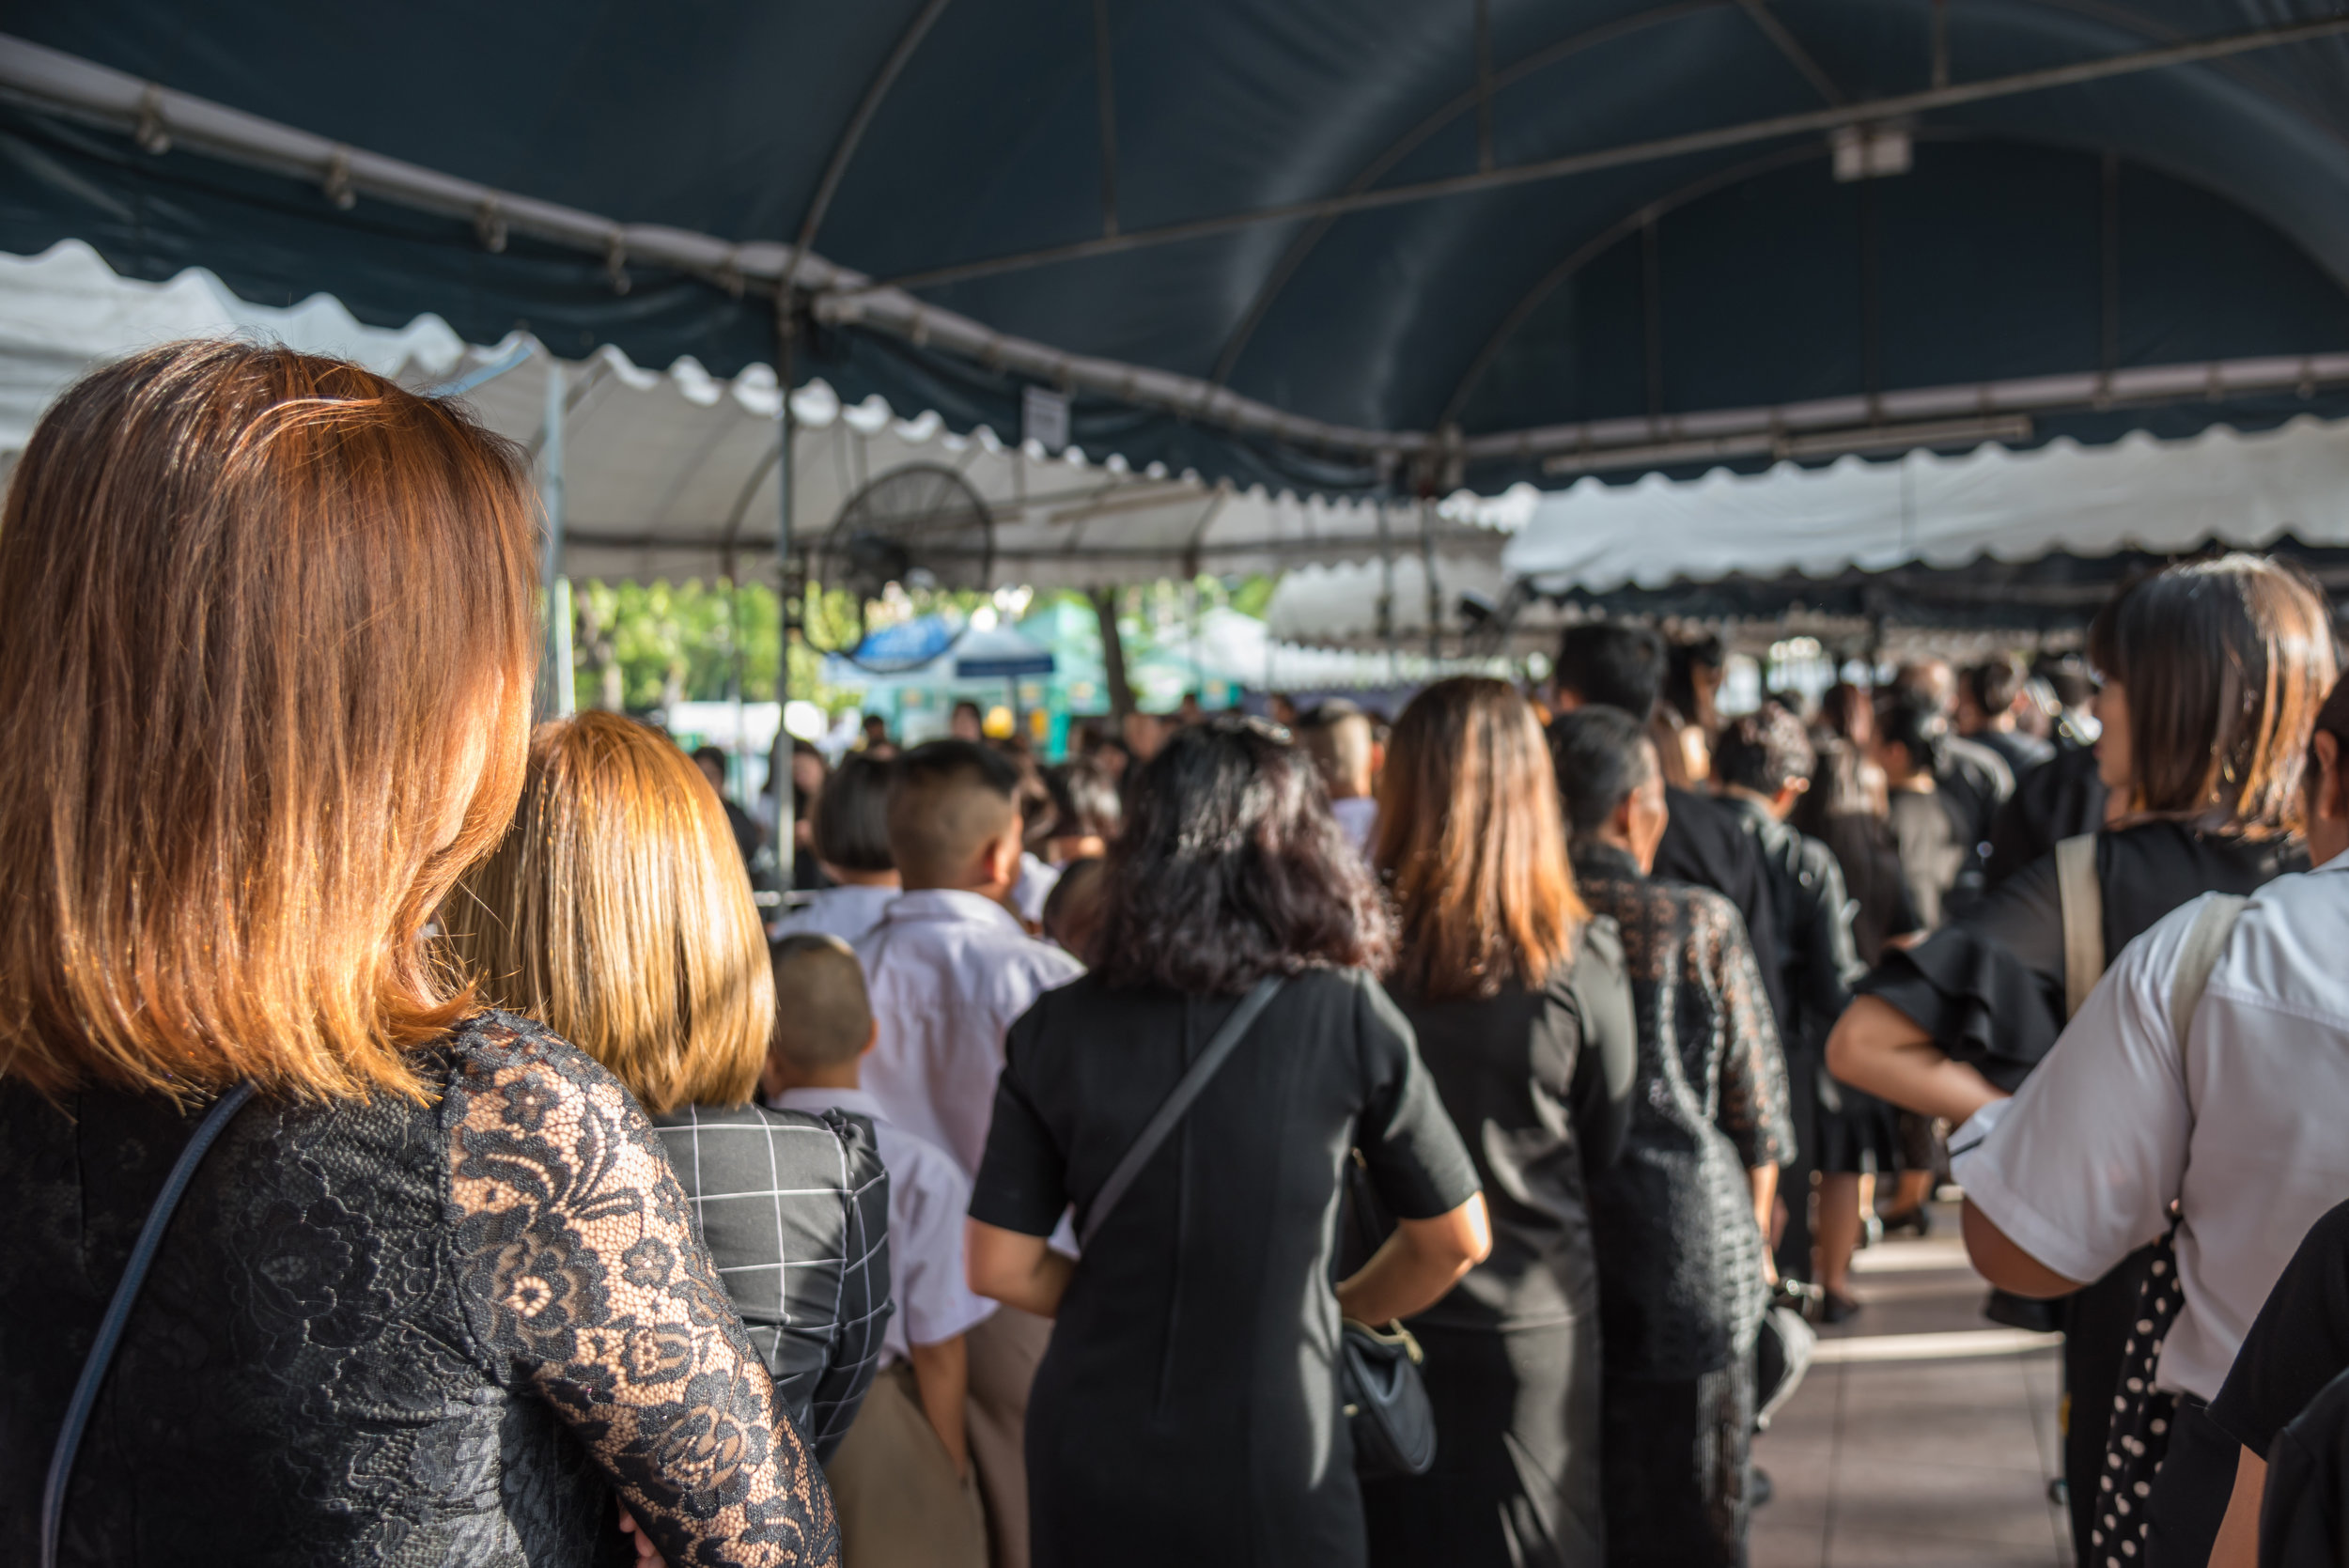 Mourners-wearing-black-color-waiting-in-the-grand-palace-to-pay-tribute-and-respect-to-their-beloved-rama-9-thai-king-bhumibol-adulyadej_HAfRhzrsb.jpg